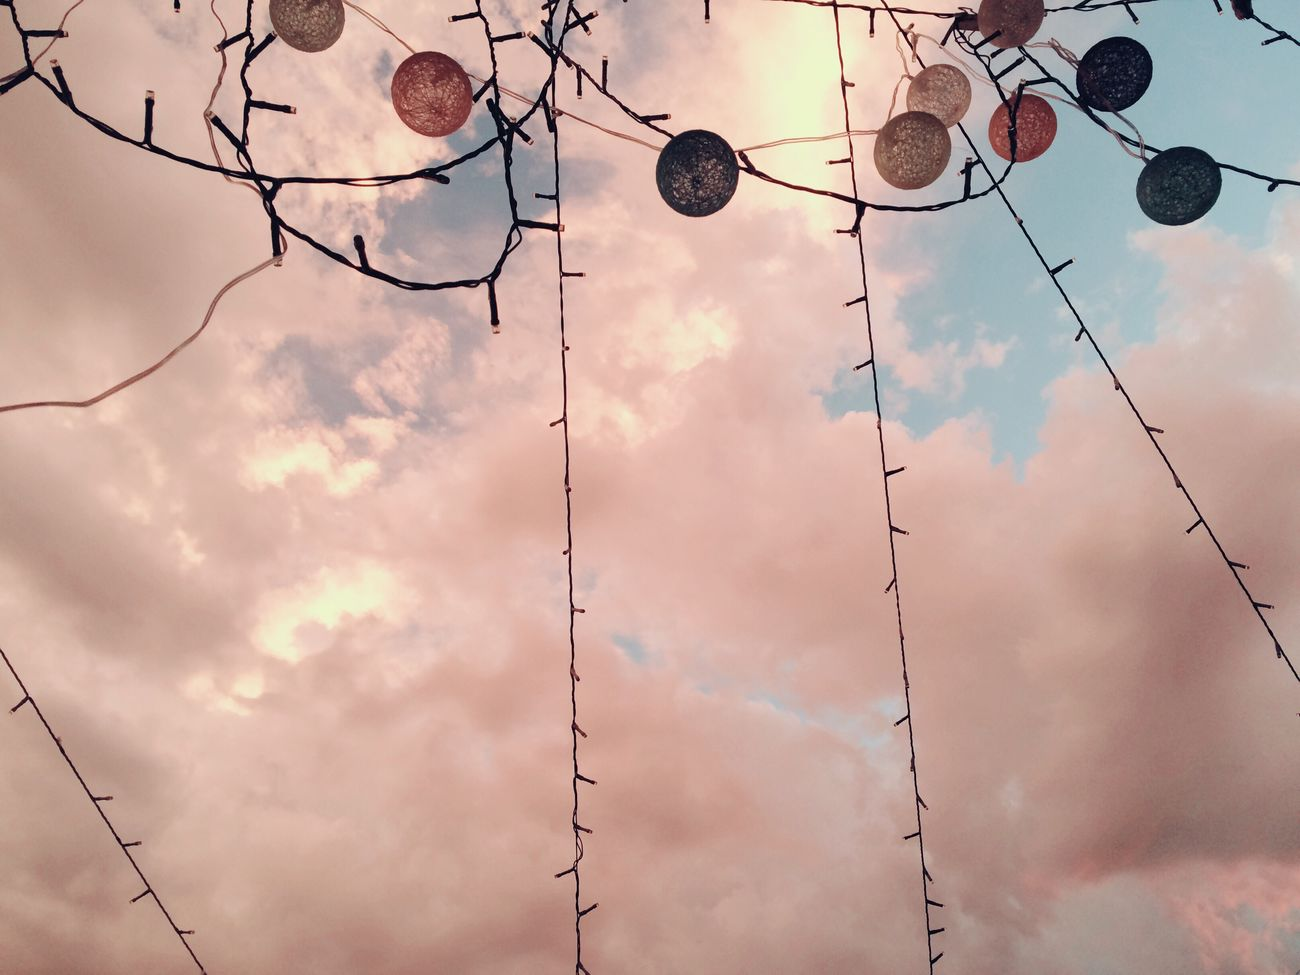 As night falls Cloud - Sky Fairylights Evening the lights shimmers and the sky's adorned magically 😍 Millennial Pink Millennial Pink Millennial Pink Millennial Pink Millennial Pink Millennial Pink